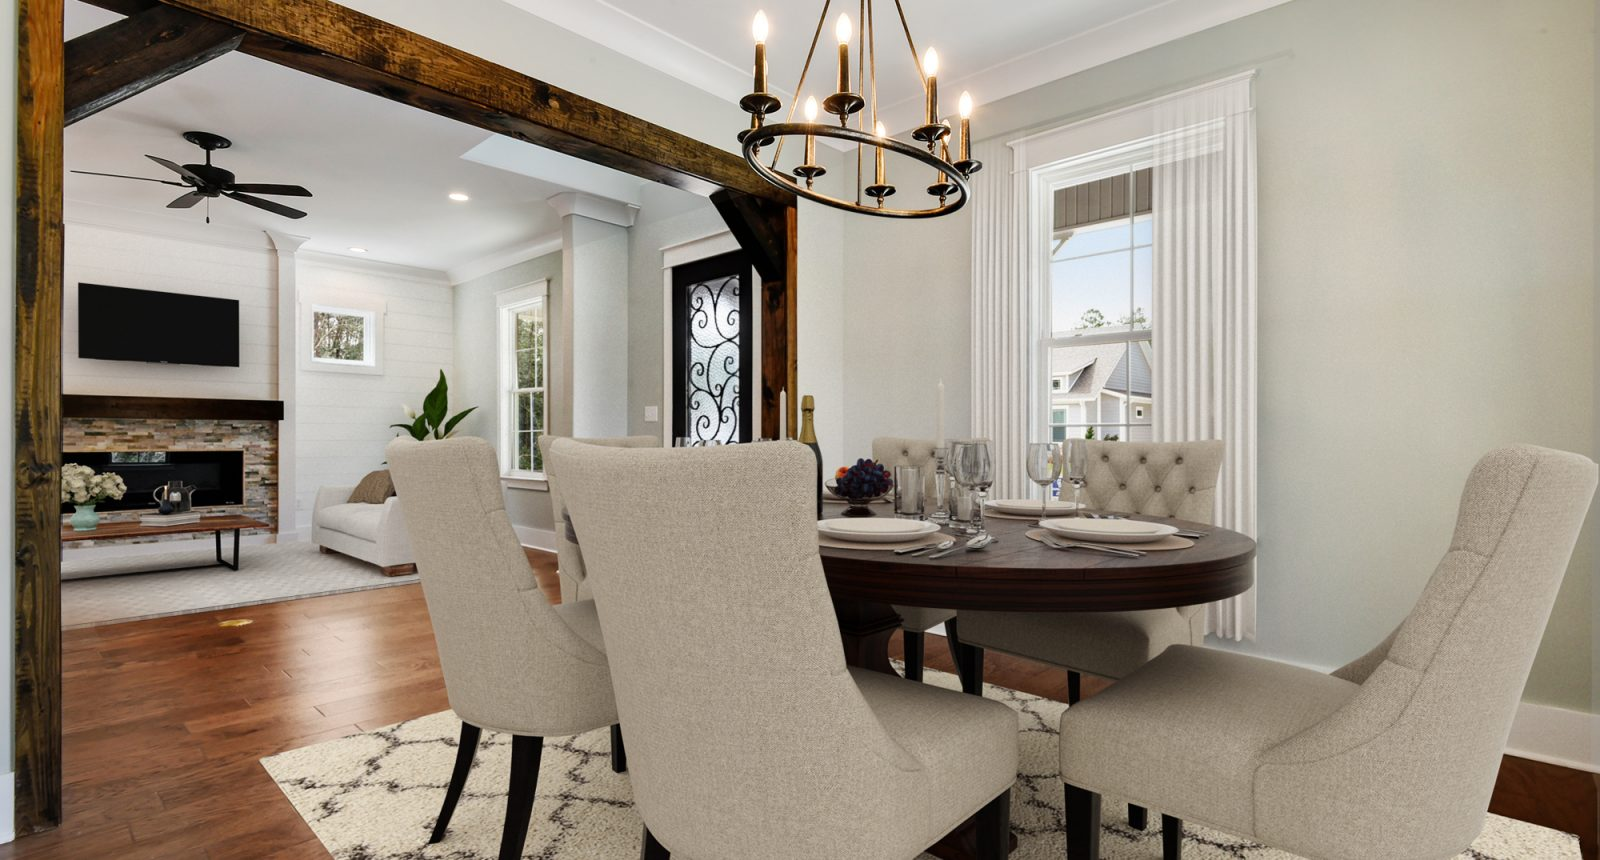 Dining room inspired by a modern vineyard